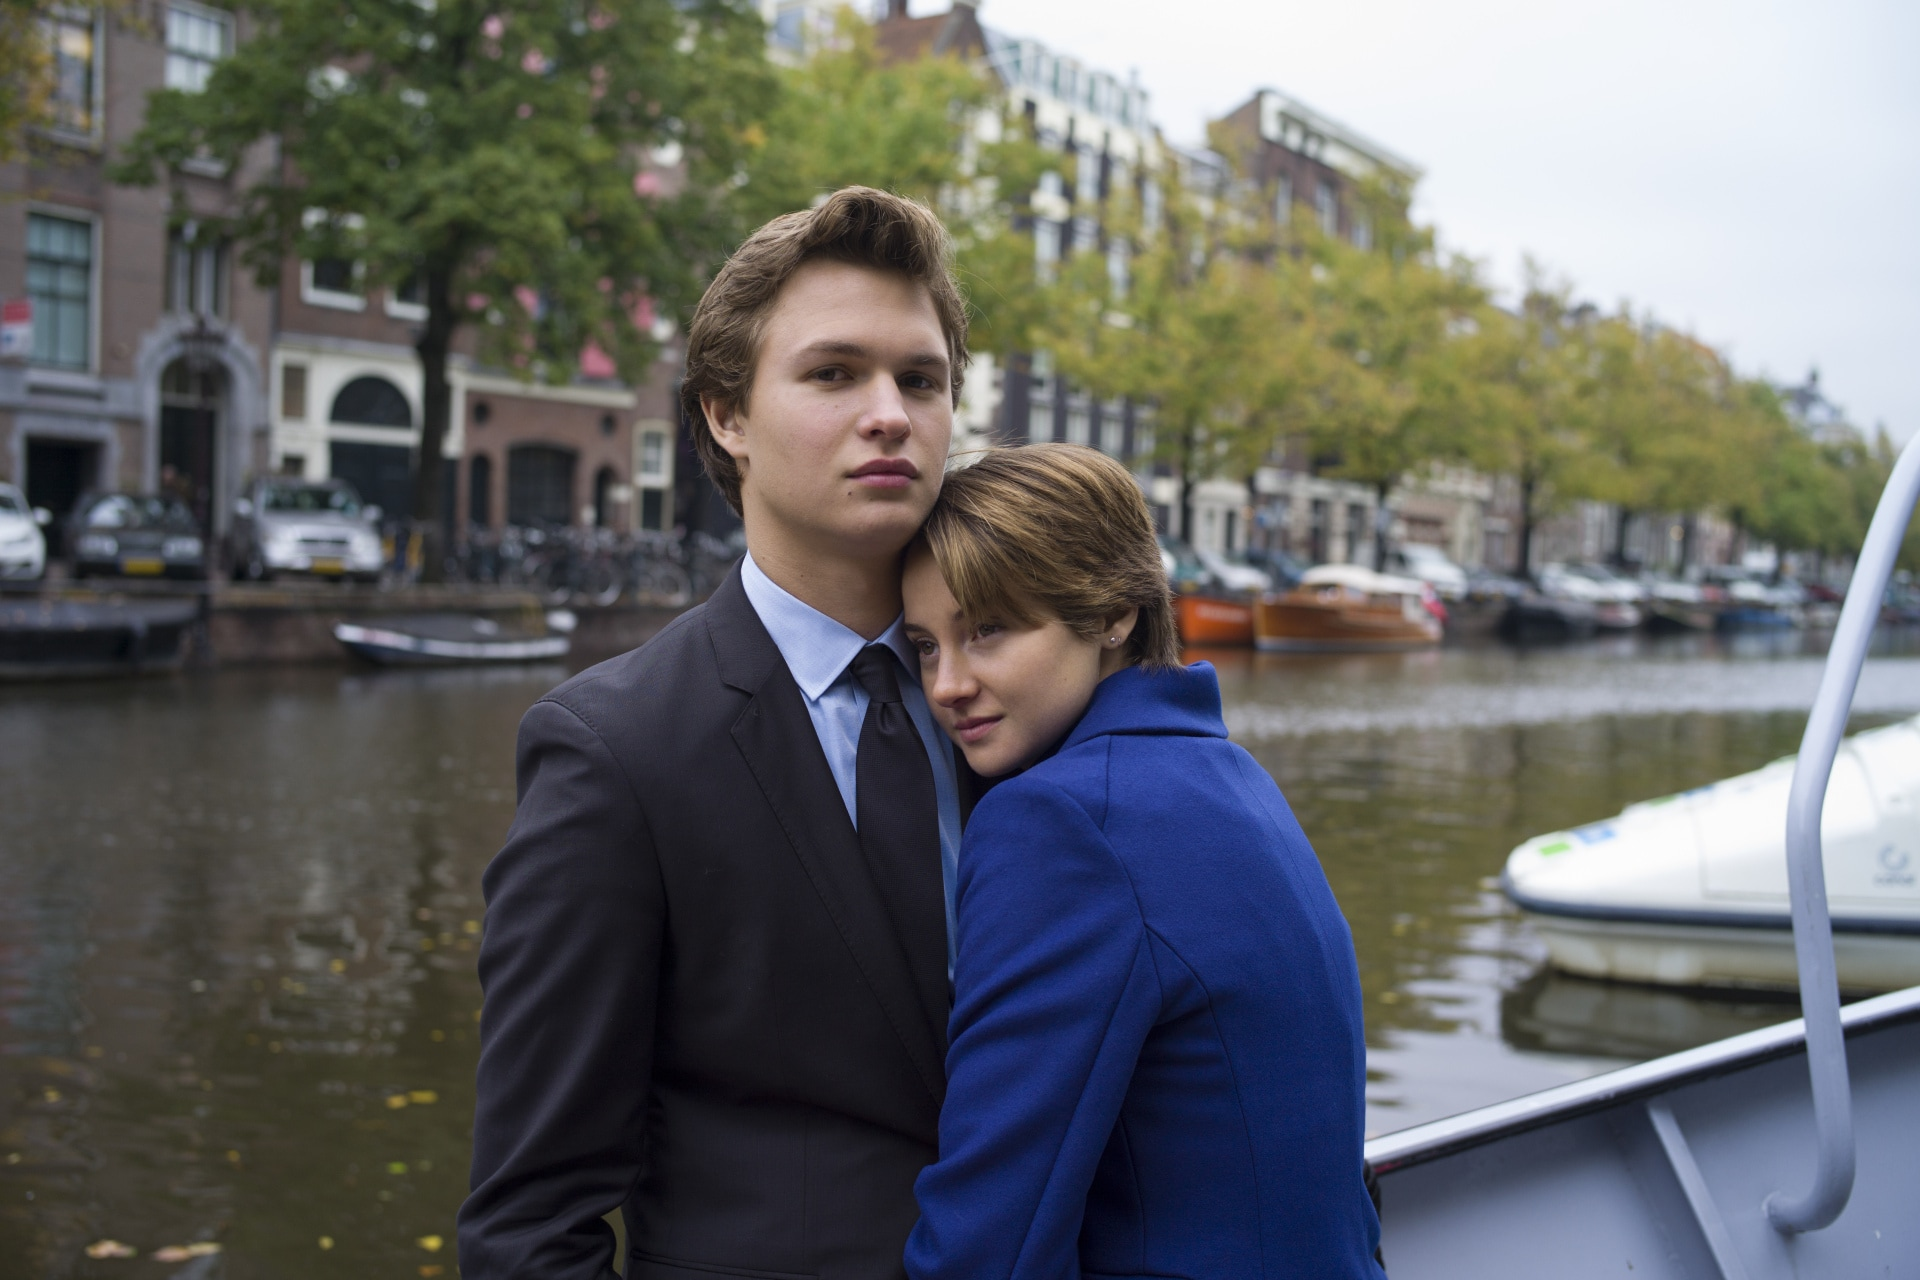 This new series is the The Fault in Our Stars meets Gossip Girl, so get ready